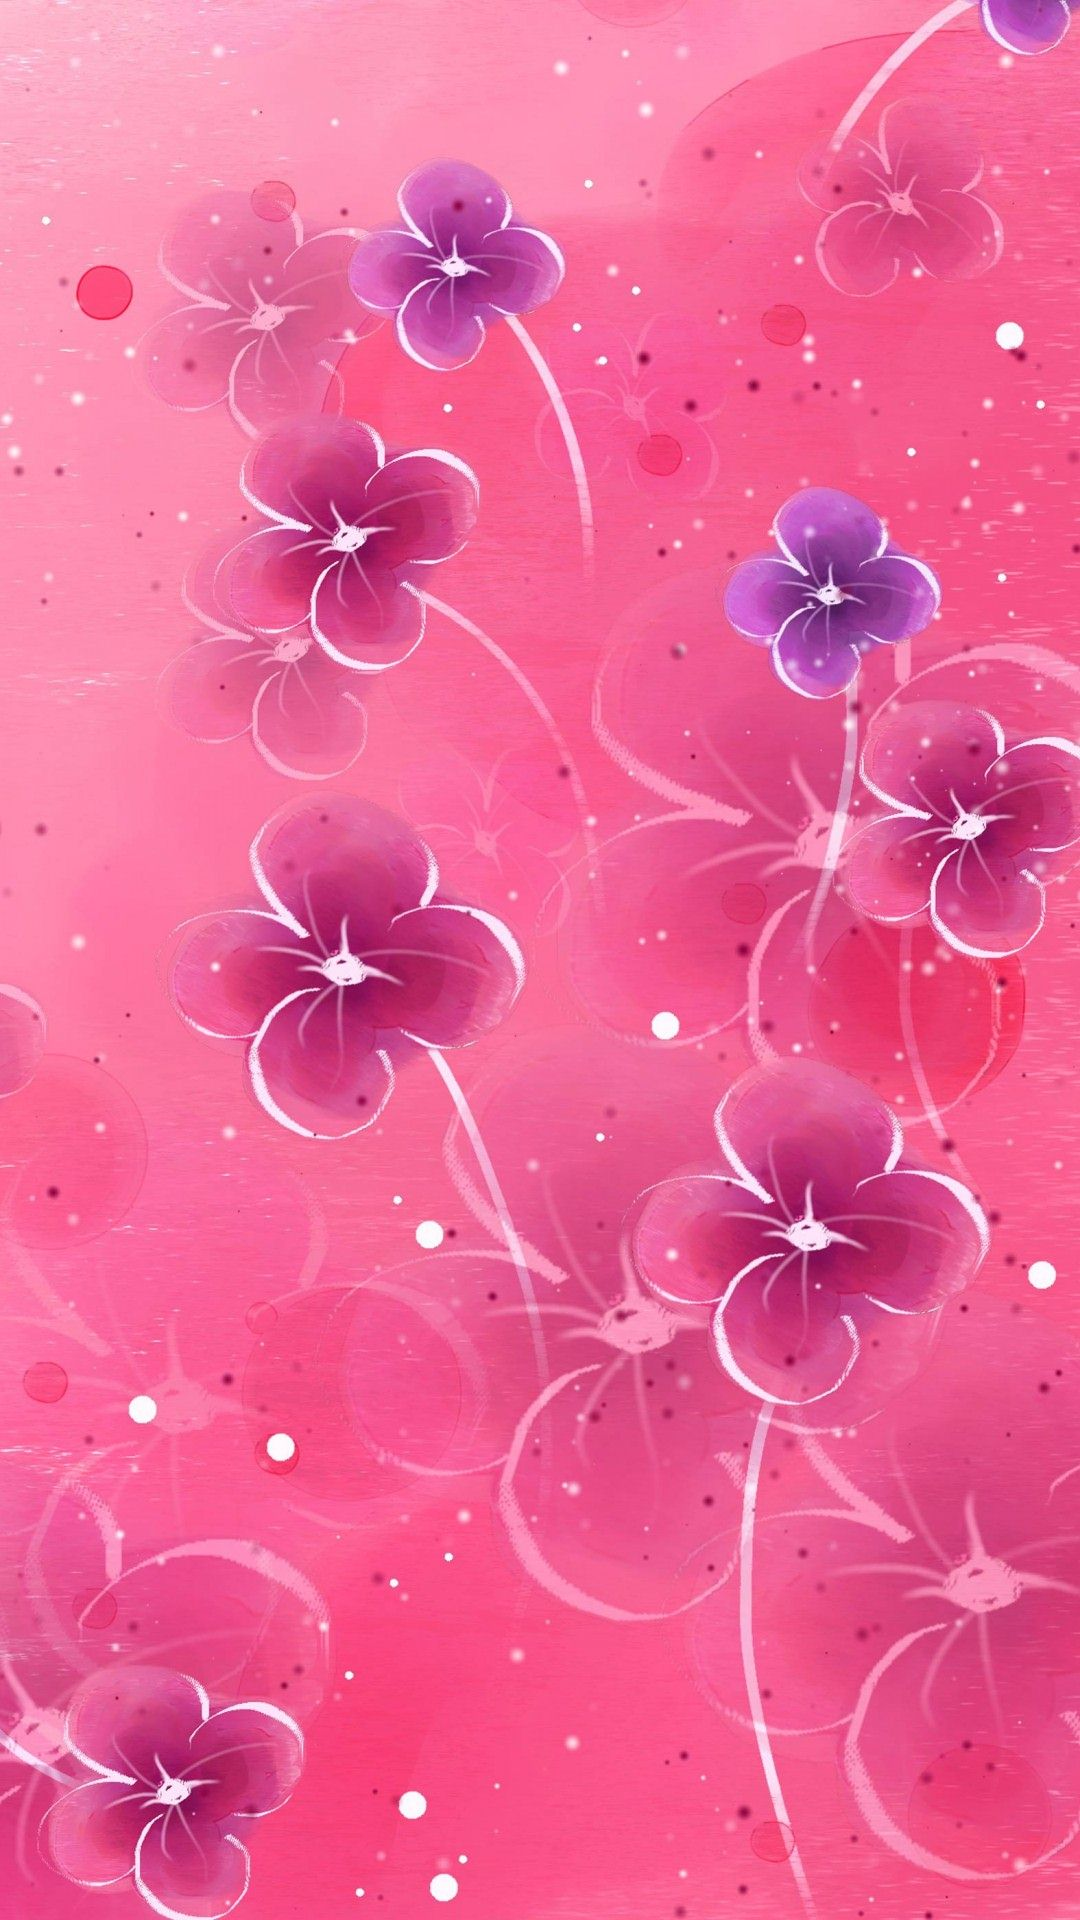 Wallpaper pink flower iphone wallpaper pic wpd006671 download mightylinksfo